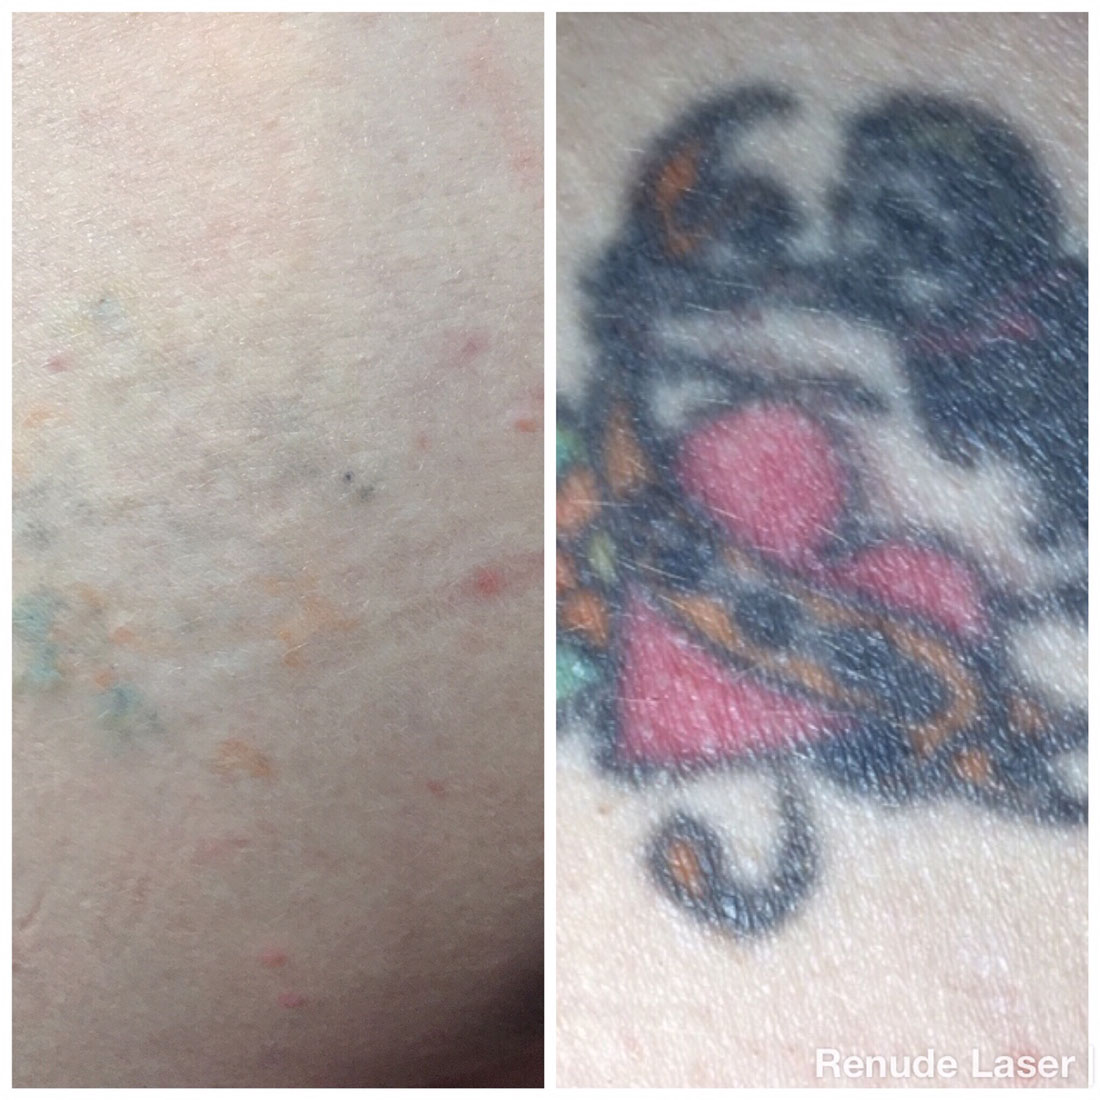 Before and After 4 sessions Renude Laser 1